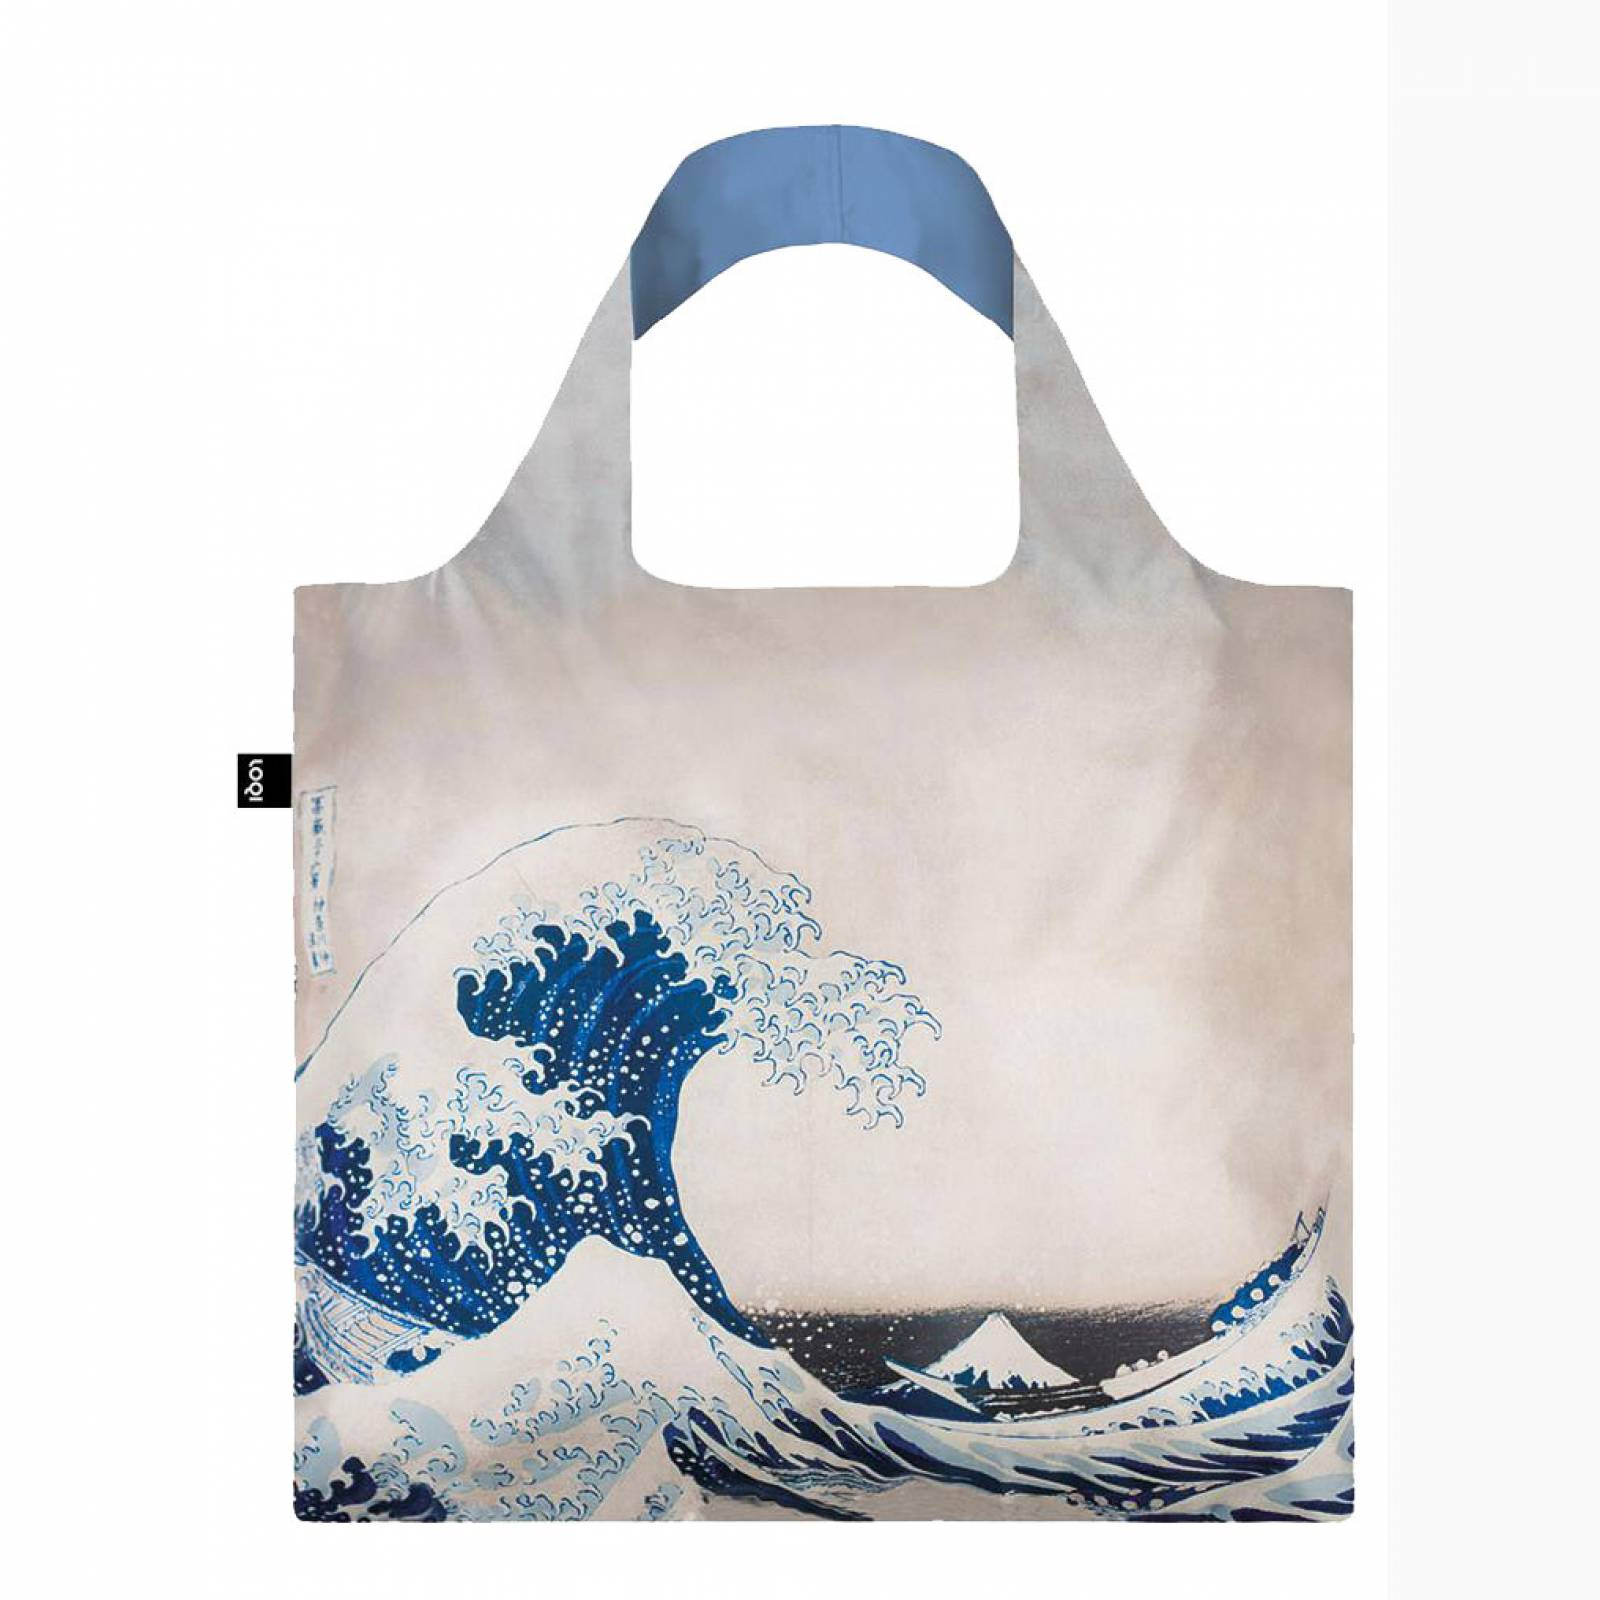 The Great Wave - Reusable Tote Bag With Pouch thumbnails